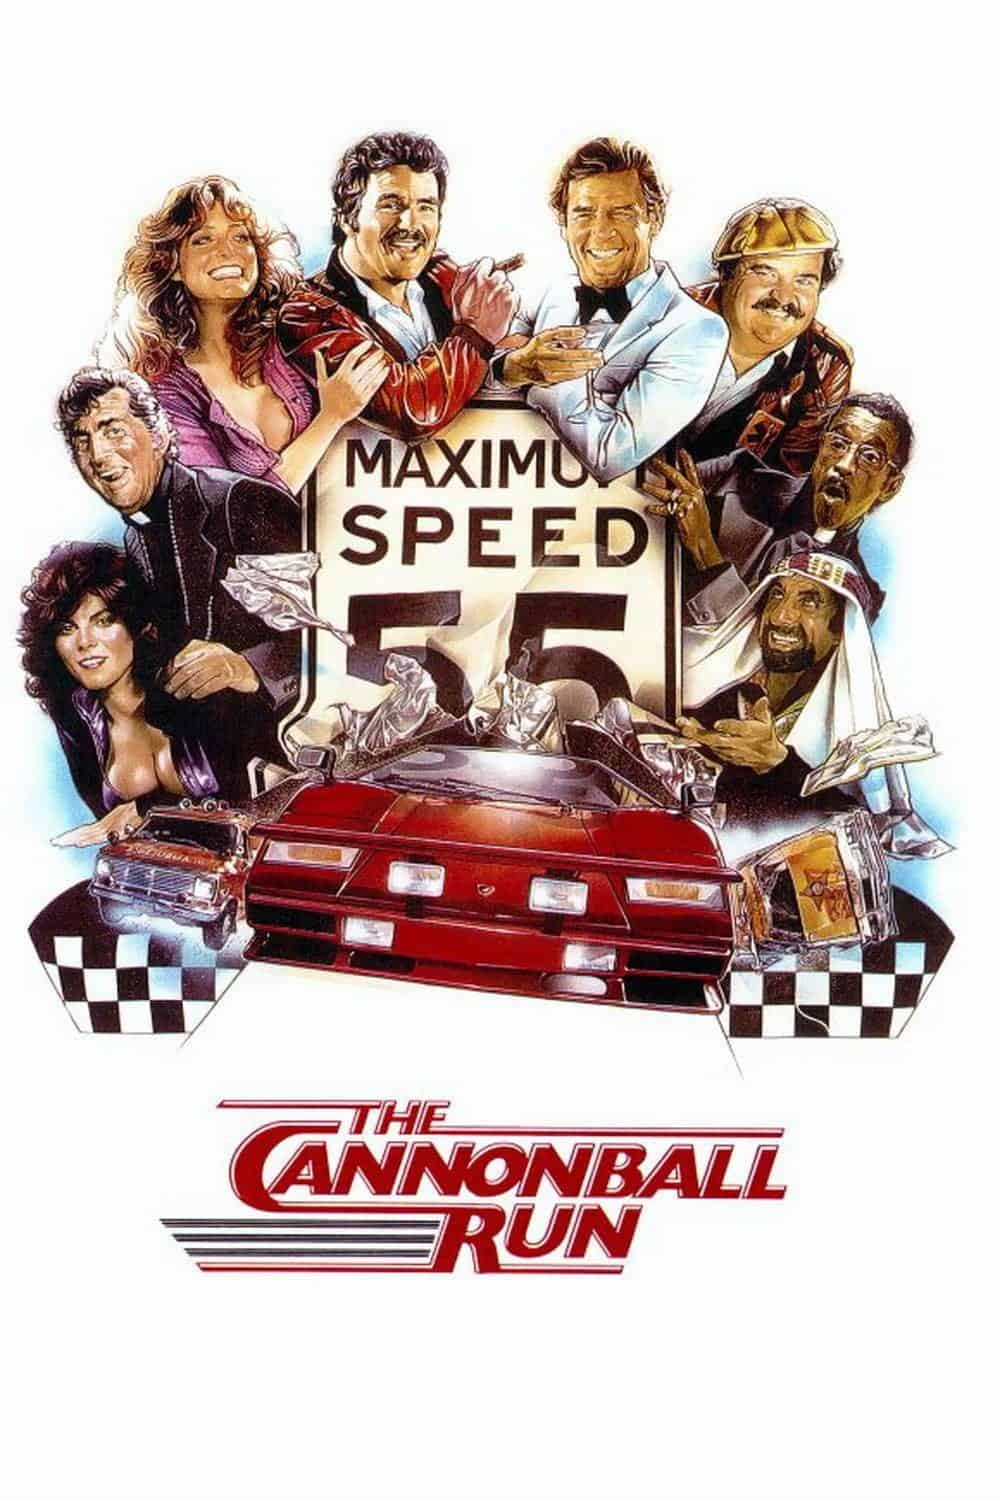 The Cannonball Run, 1981